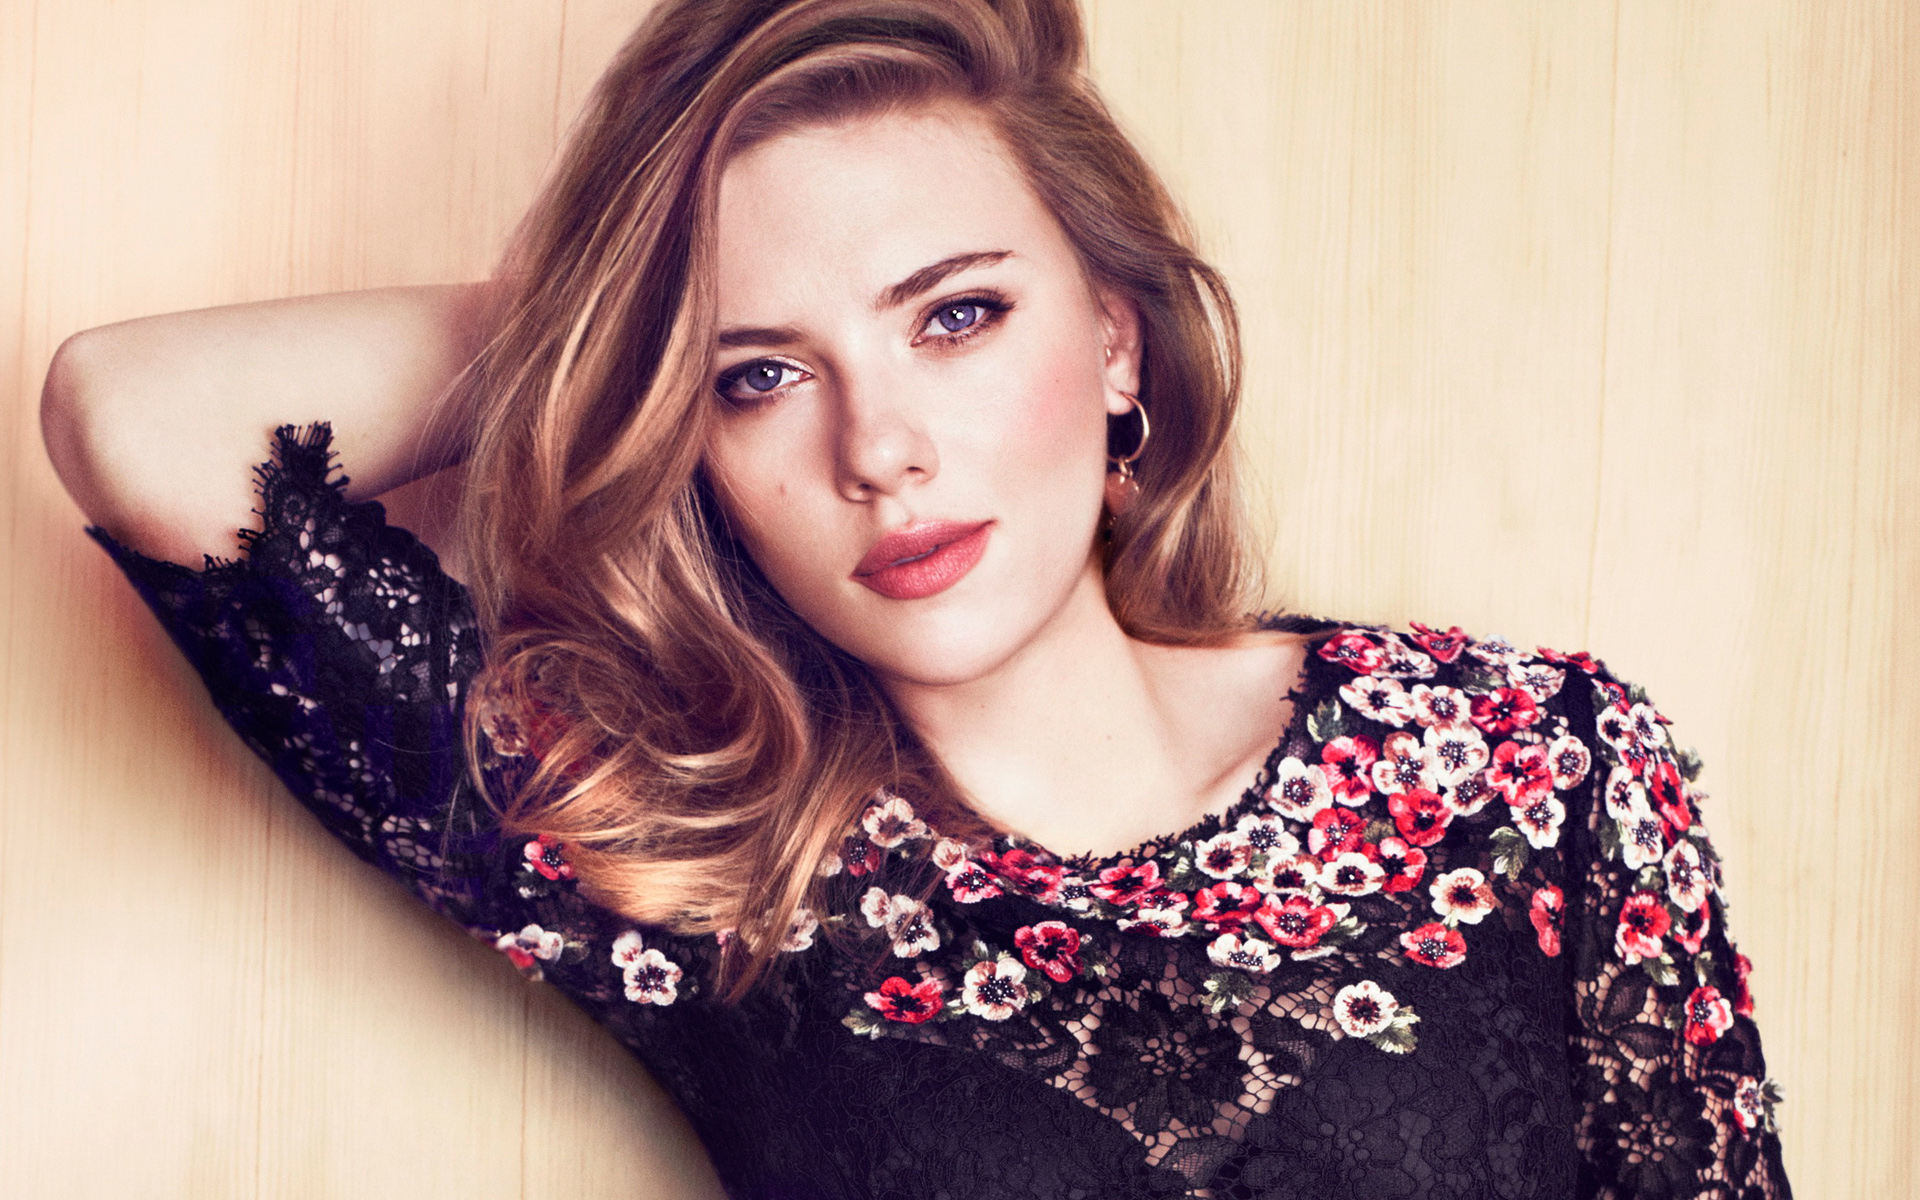 1257548-1920x1200-quality-scarlett-johansson-wallpaper